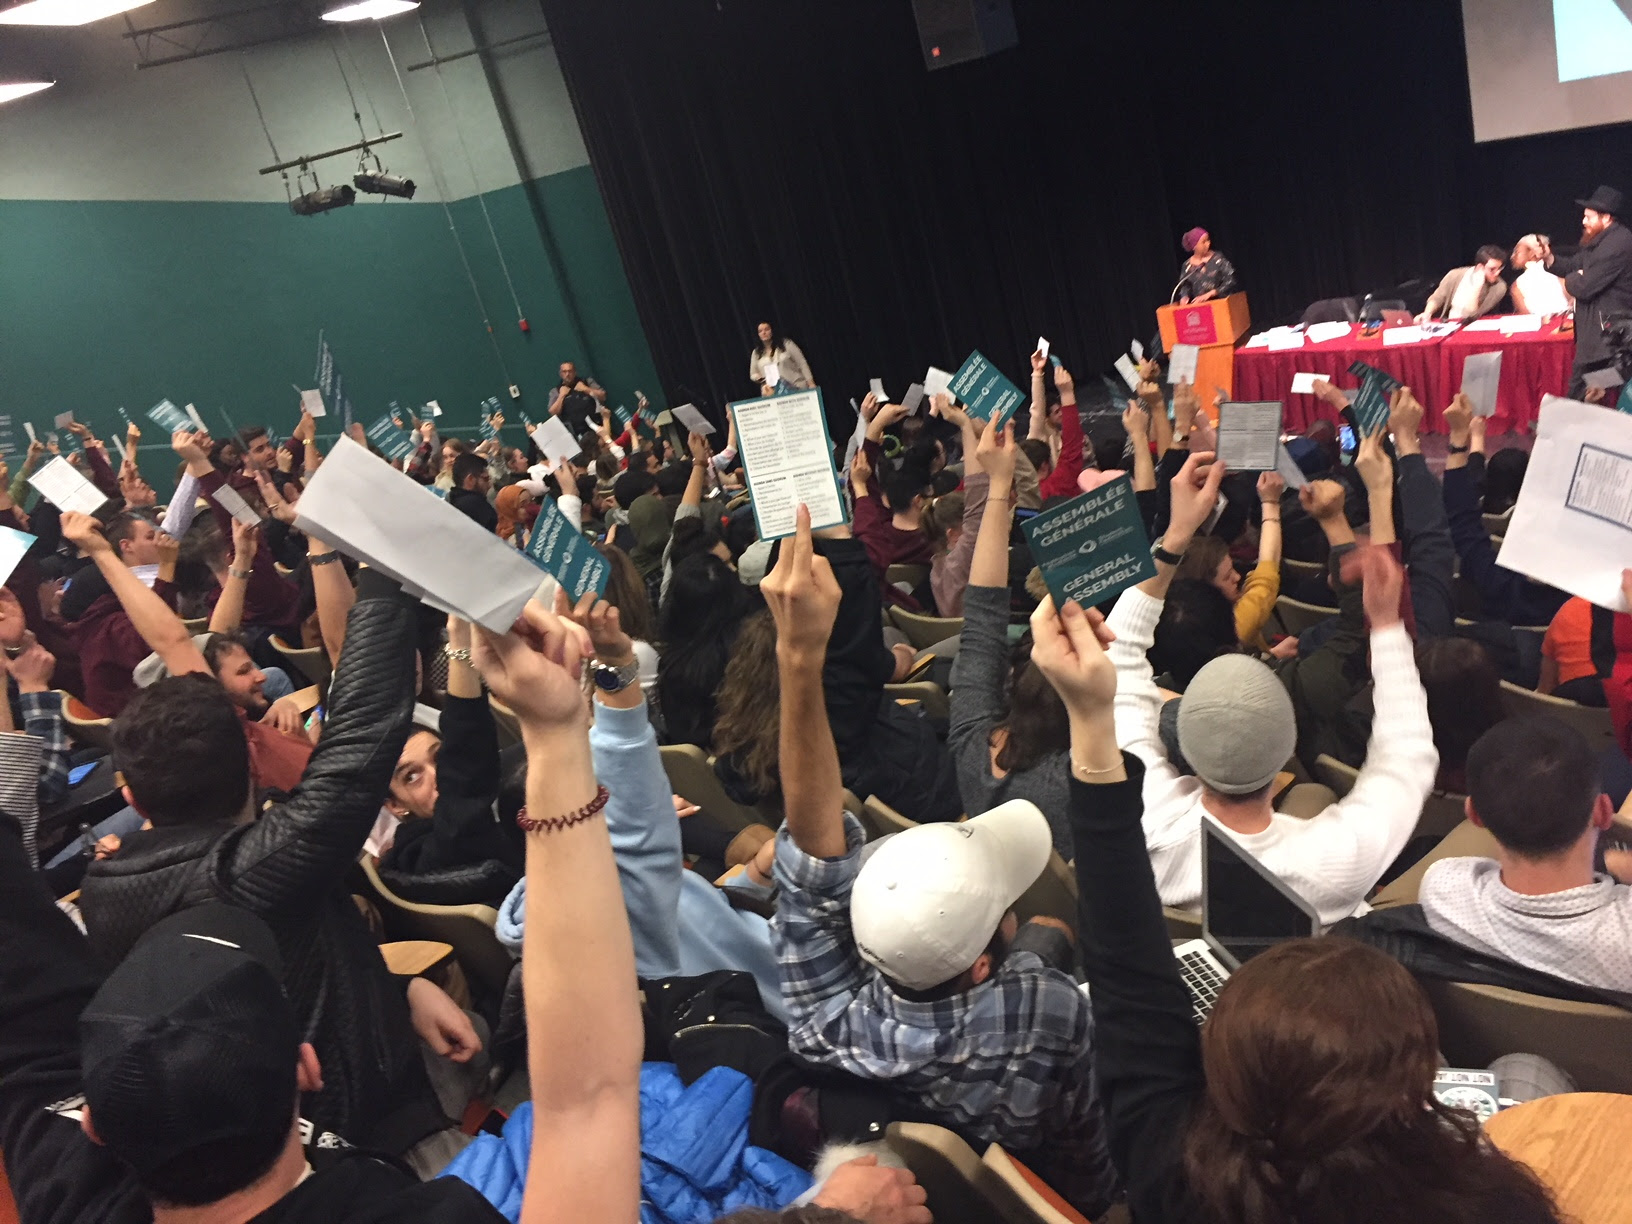 StandWithUs Canada Applauds Defeat of BDS at University of Ottawa